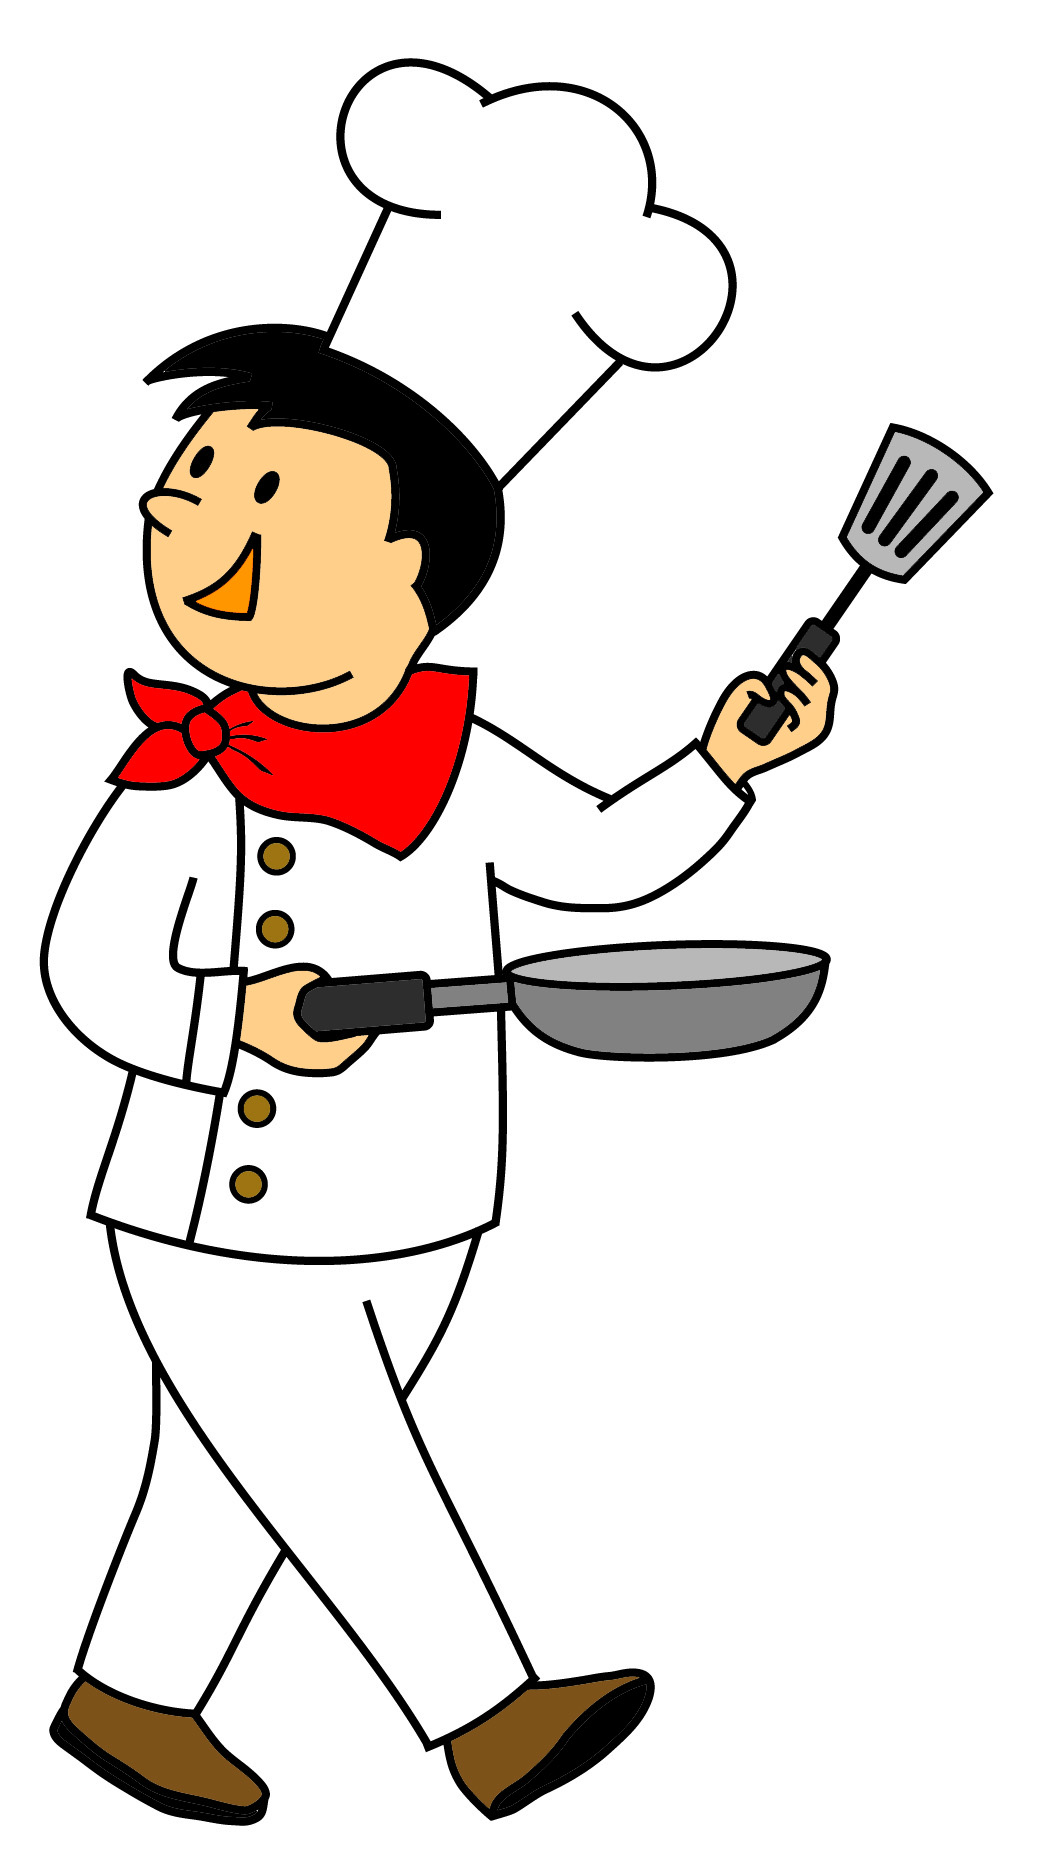 Animated clipart chef svg download Animated clipart for free chef - ClipartFest svg download